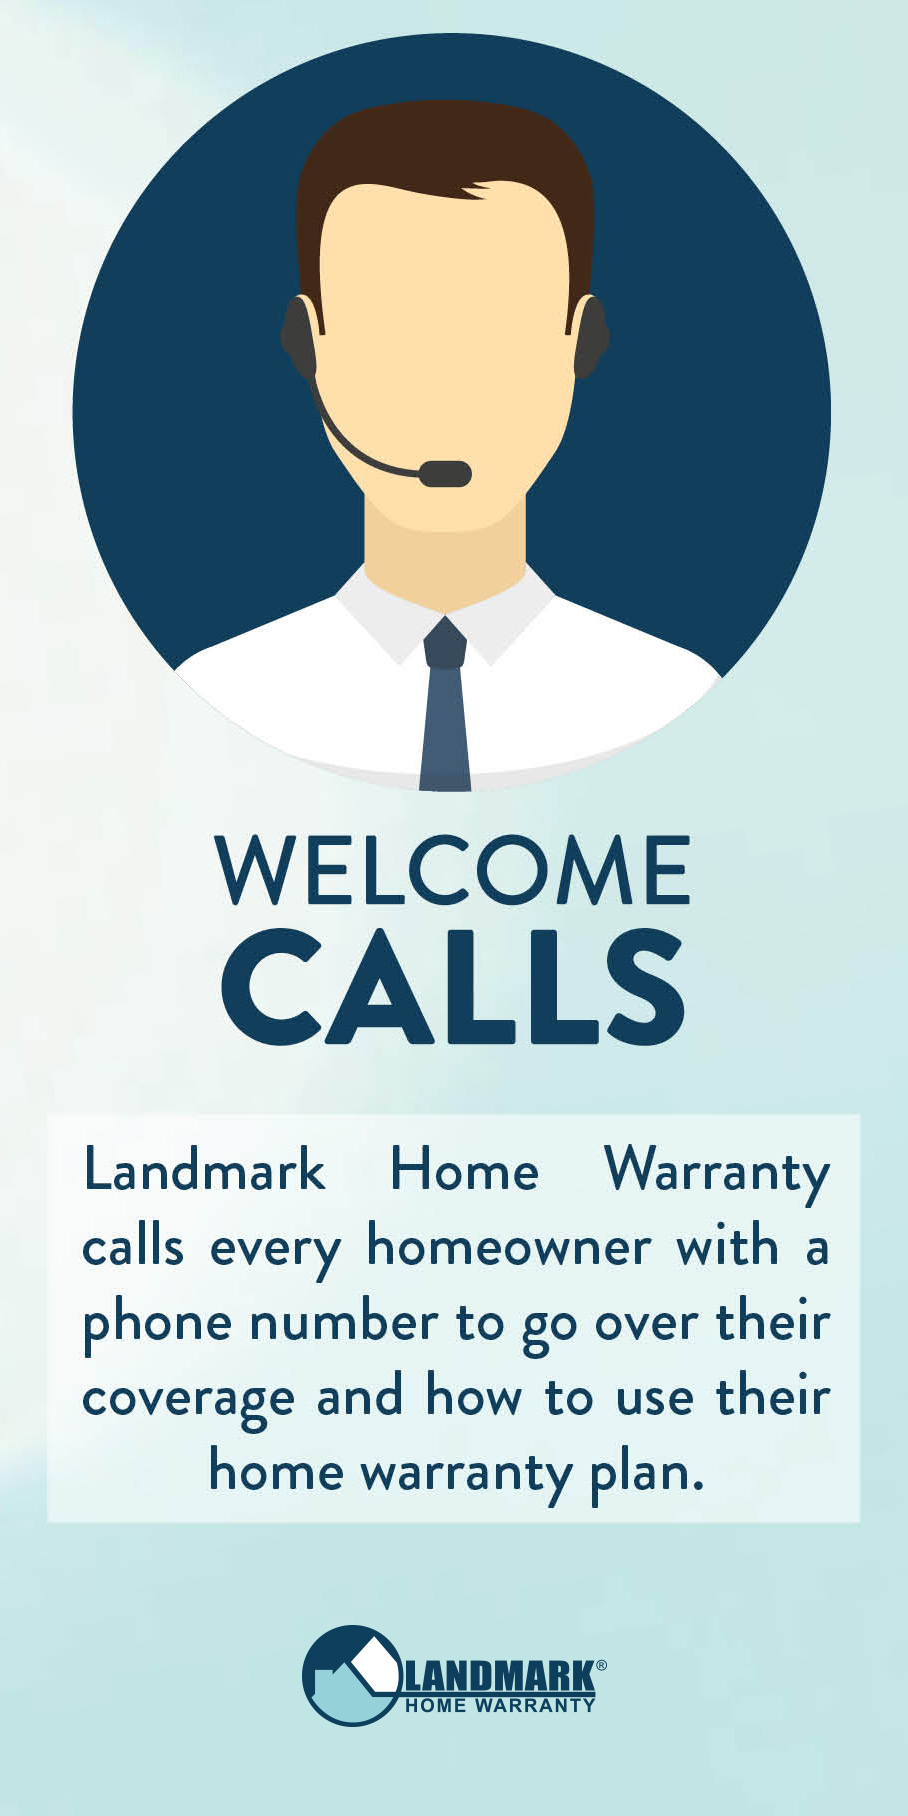 Without a phone number homeowners do not get a welcome call.